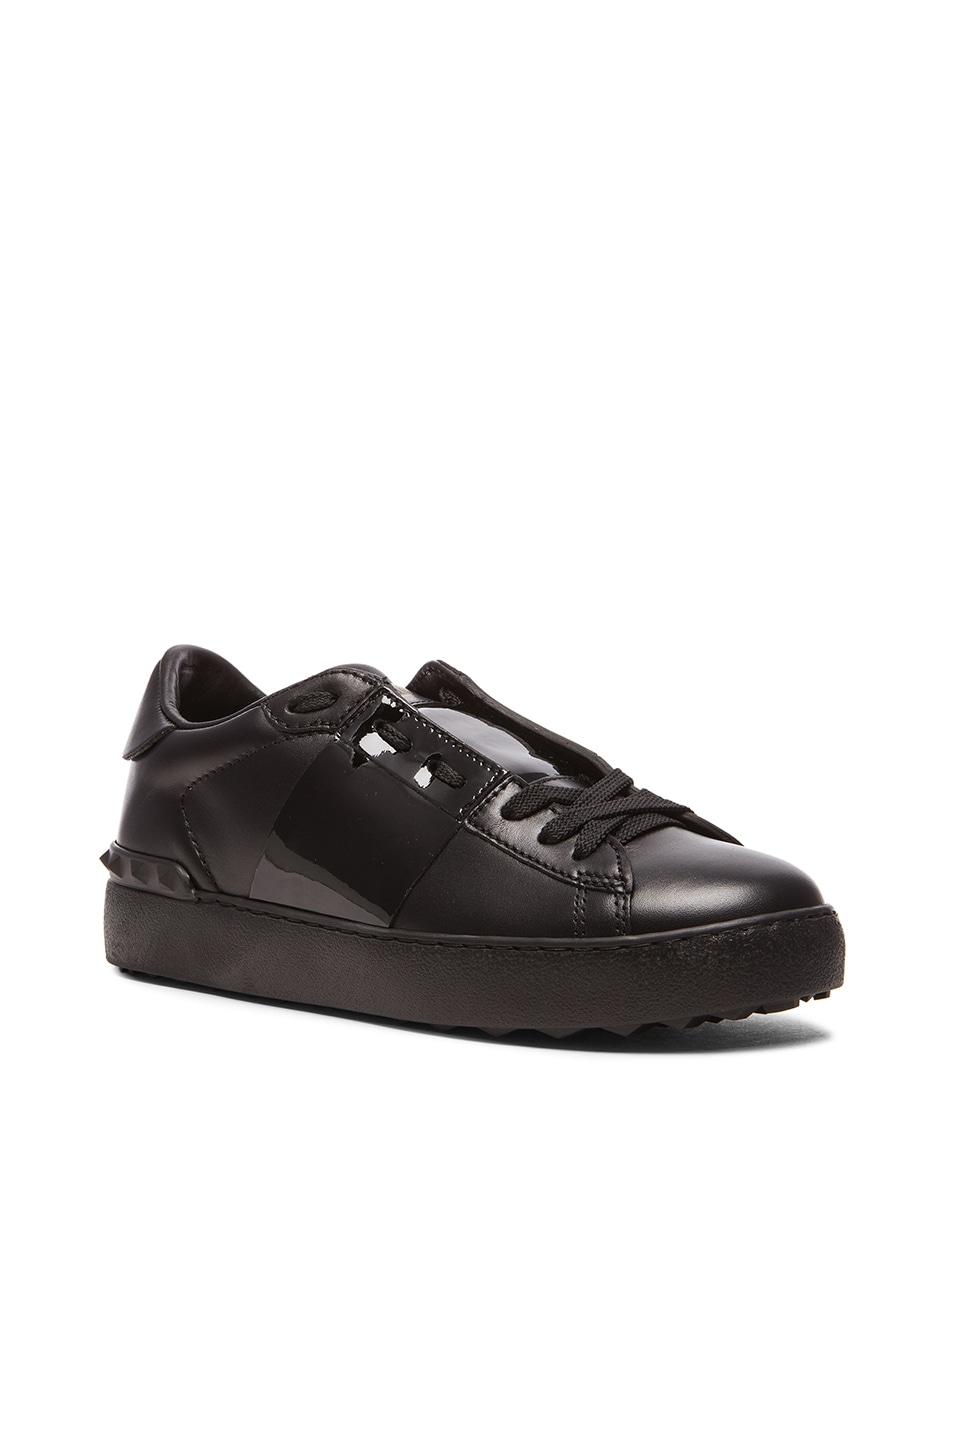 dfc7d012cc0 Image 2 of Valentino Open Low Top Leather Sneakers in Black